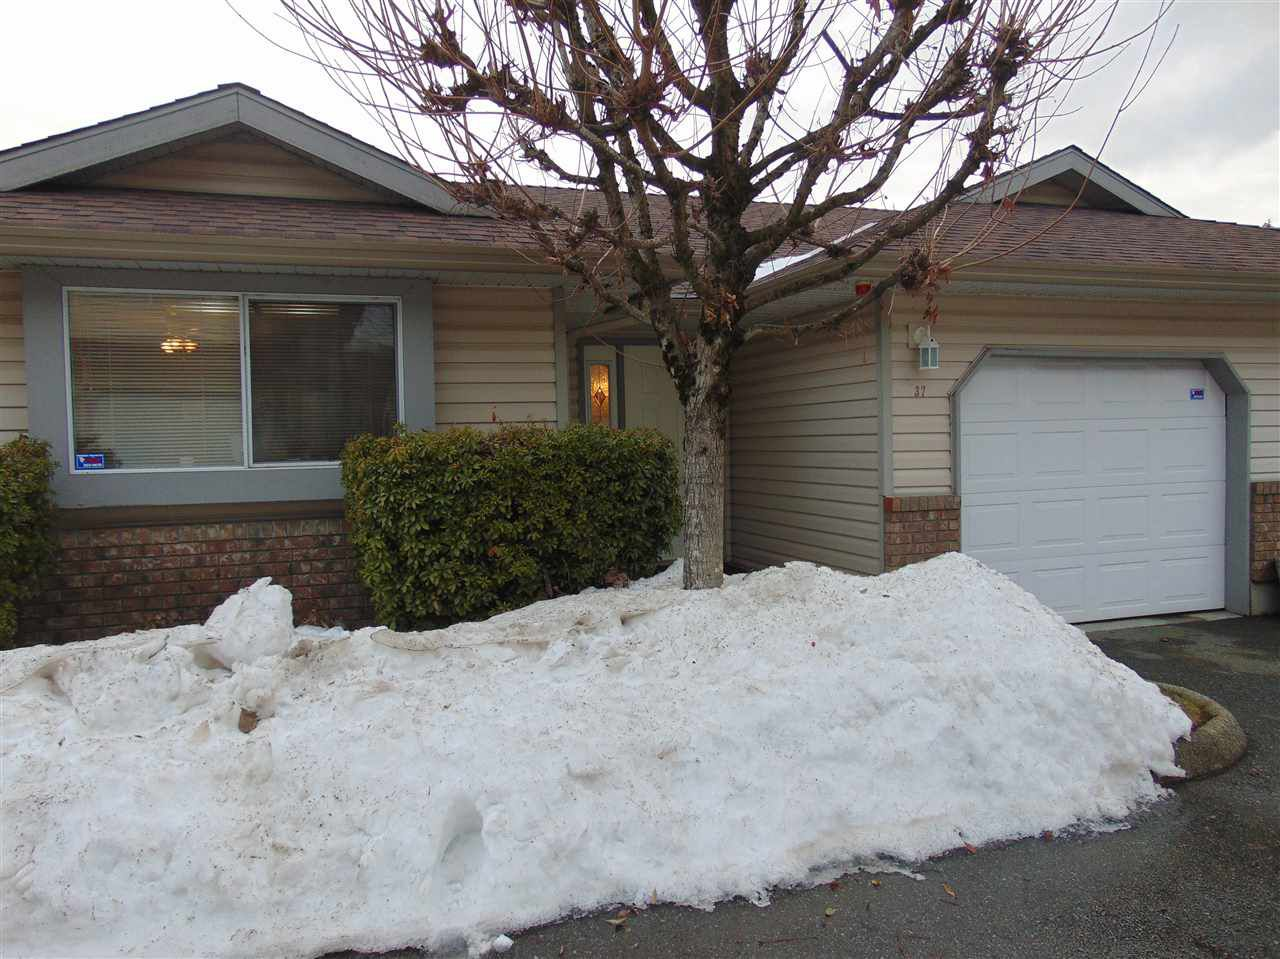 """Main Photo: 37 2023 WINFIELD Drive in Abbotsford: Abbotsford East Townhouse for sale in """"Meadow View"""" : MLS®# R2138029"""